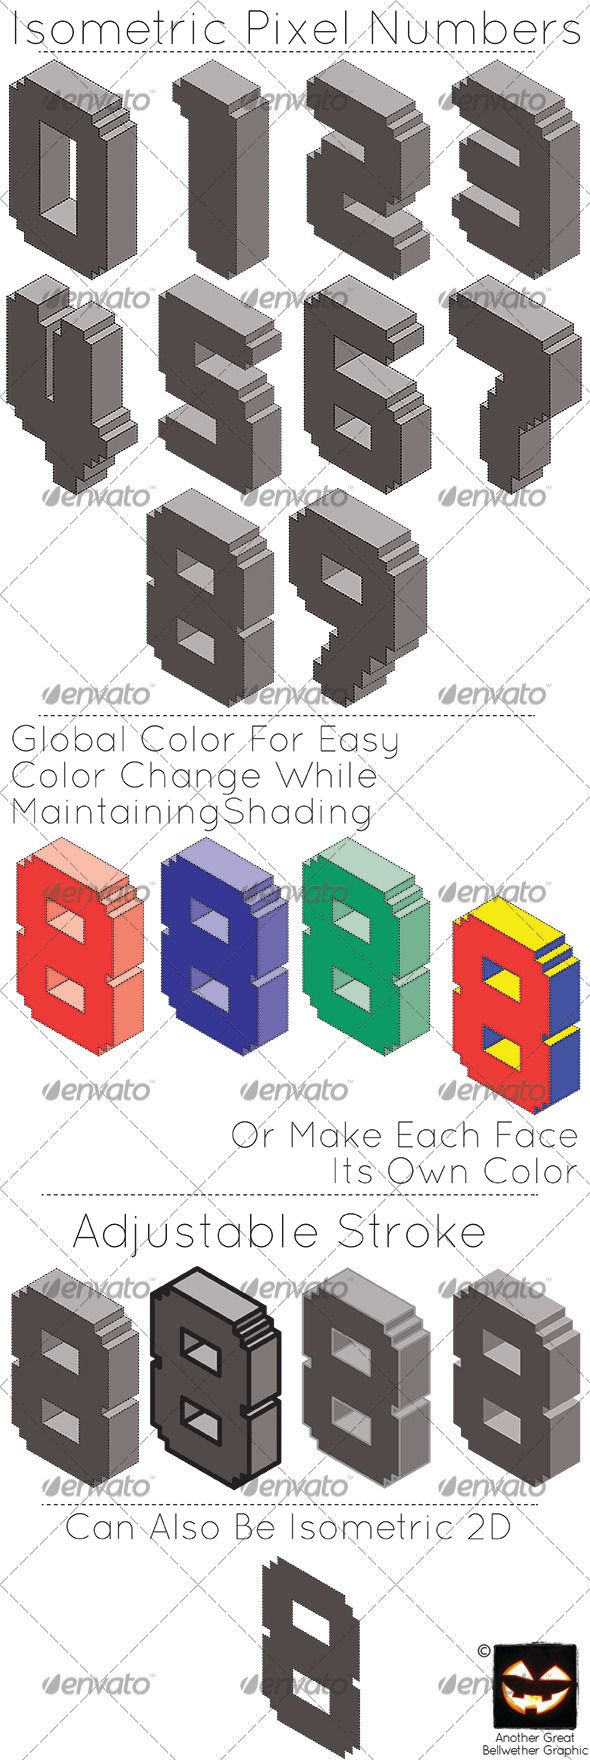 Elegant royal frame with crown vector colourbox - Isometric Pixel Numbers Graphicriver A Vector Set Of Numbers 0 9 In An Isometric